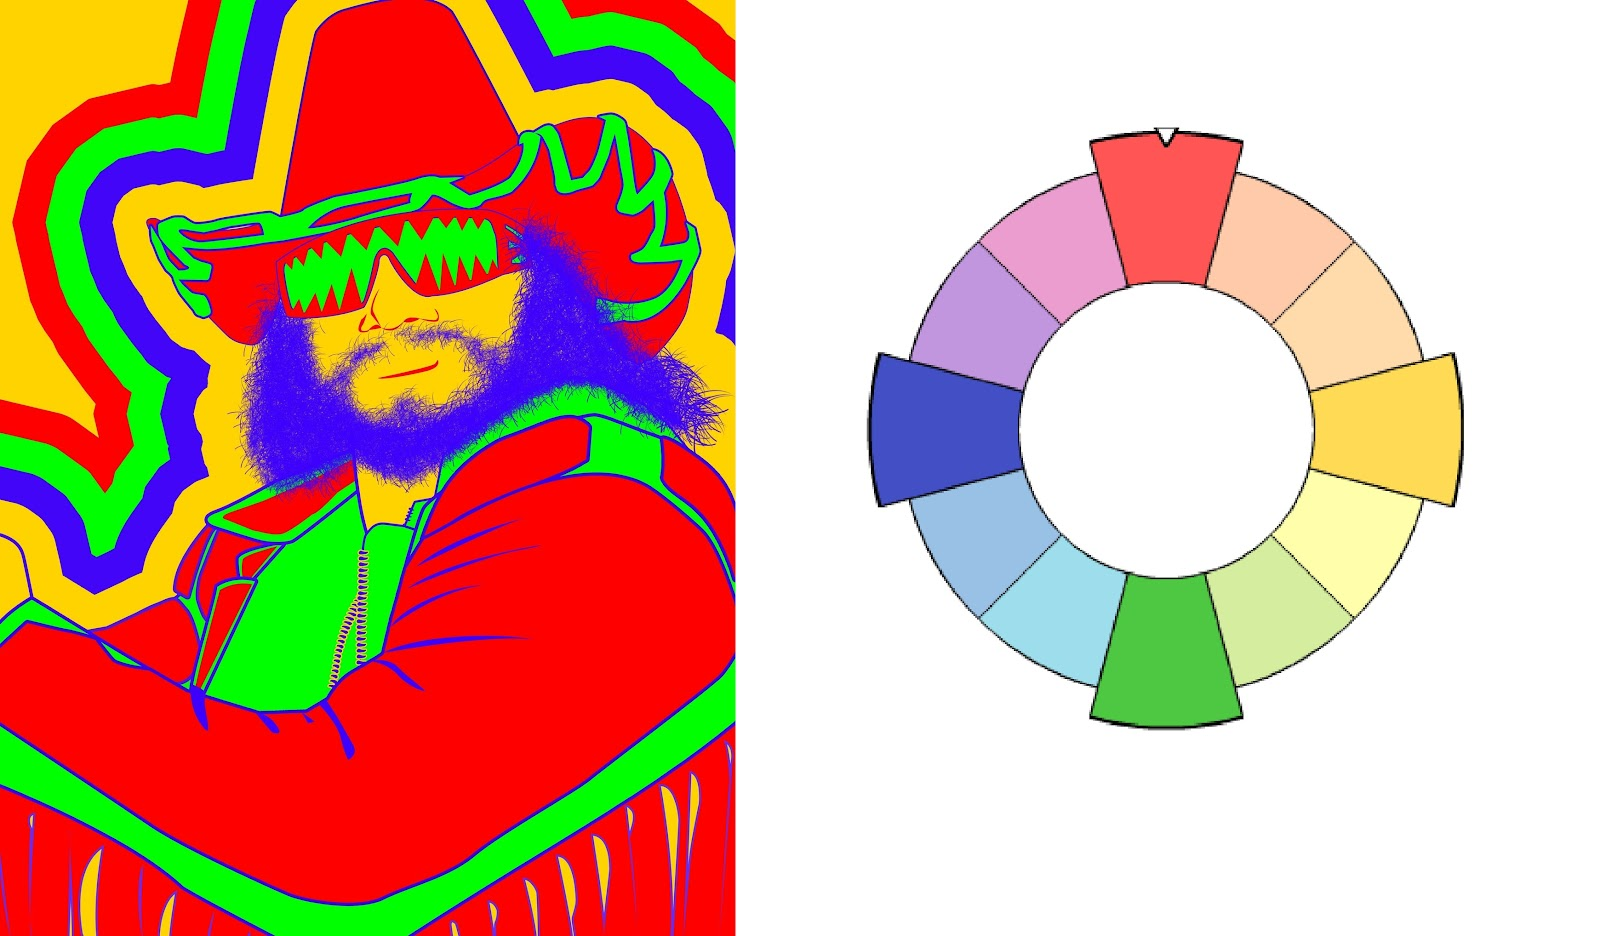 macho_man_randy_savage___square_color_scheme_by_kayfriday-d5rr16o.jpg